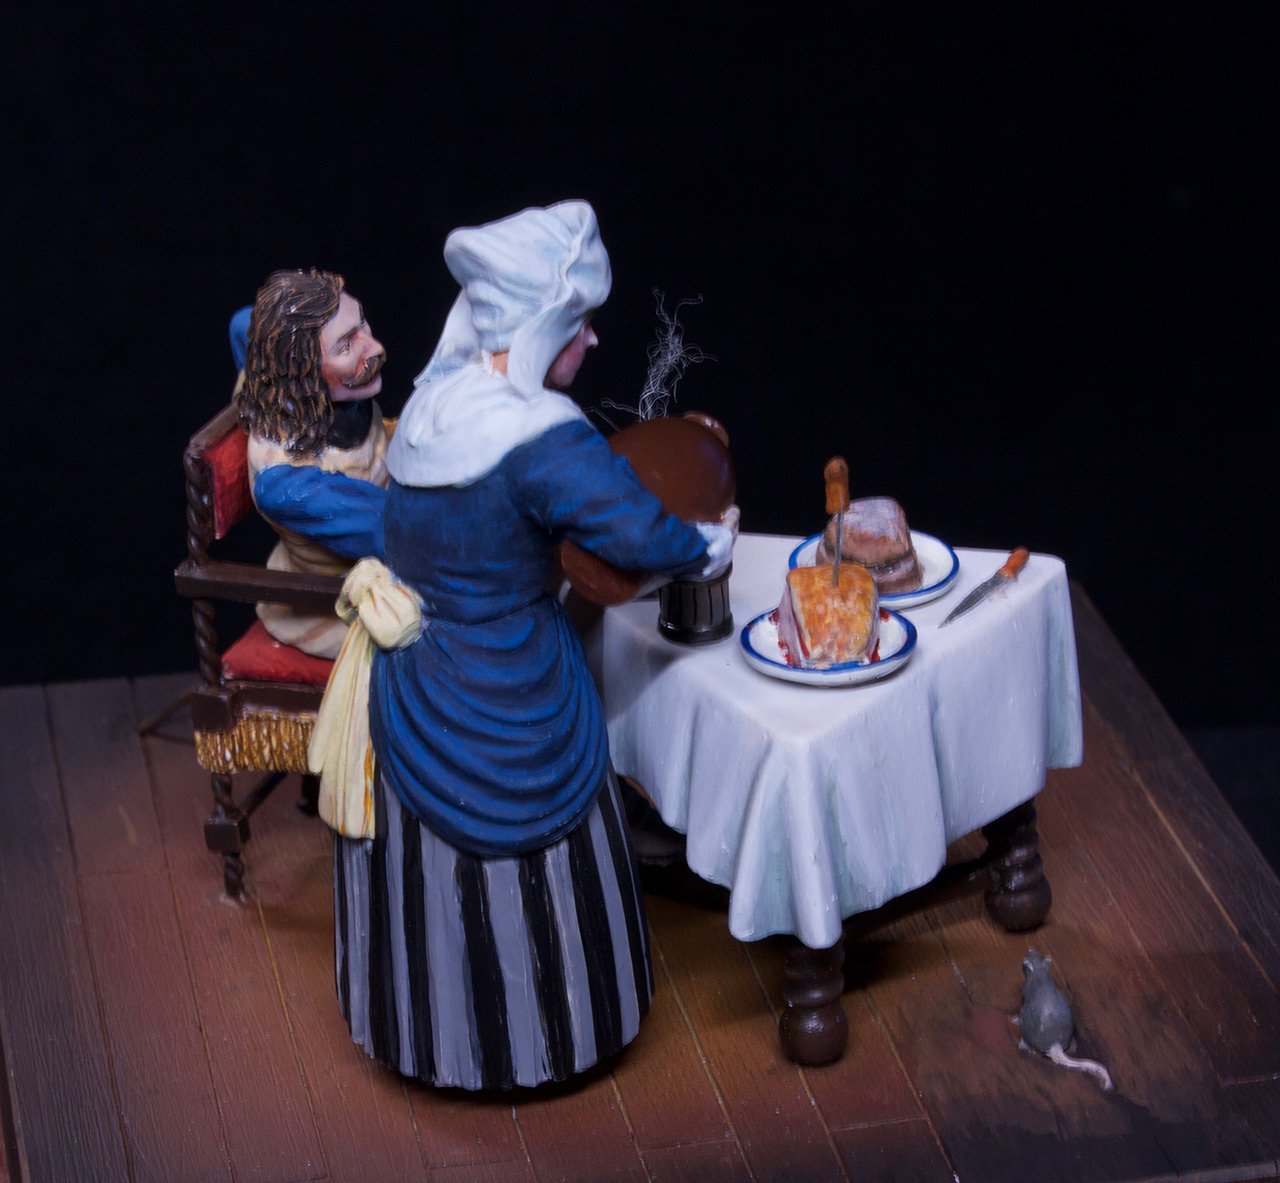 Dioramas and Vignettes: Waitress and cavalier, photo #12